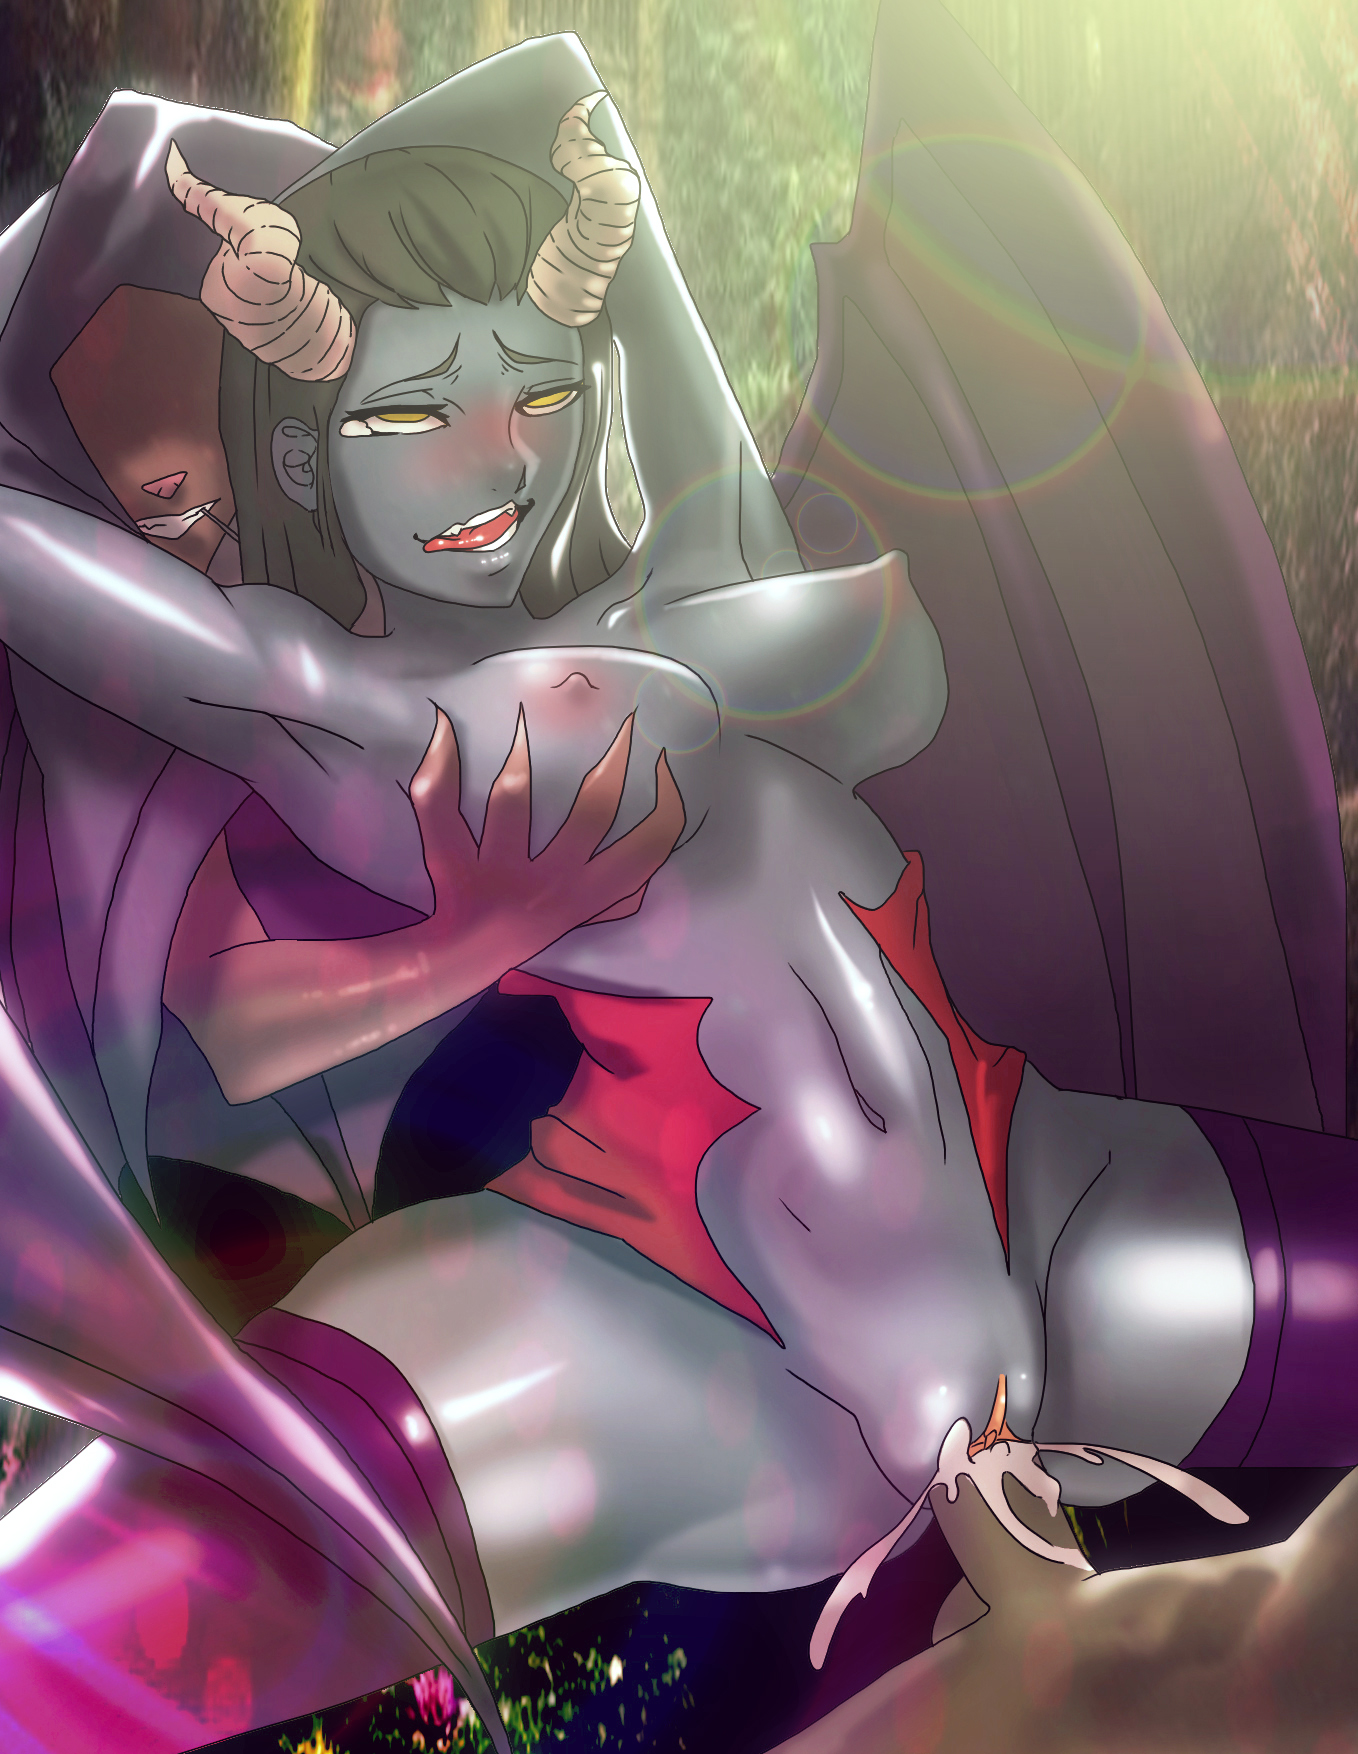 Dota1 porn art hentai galleries